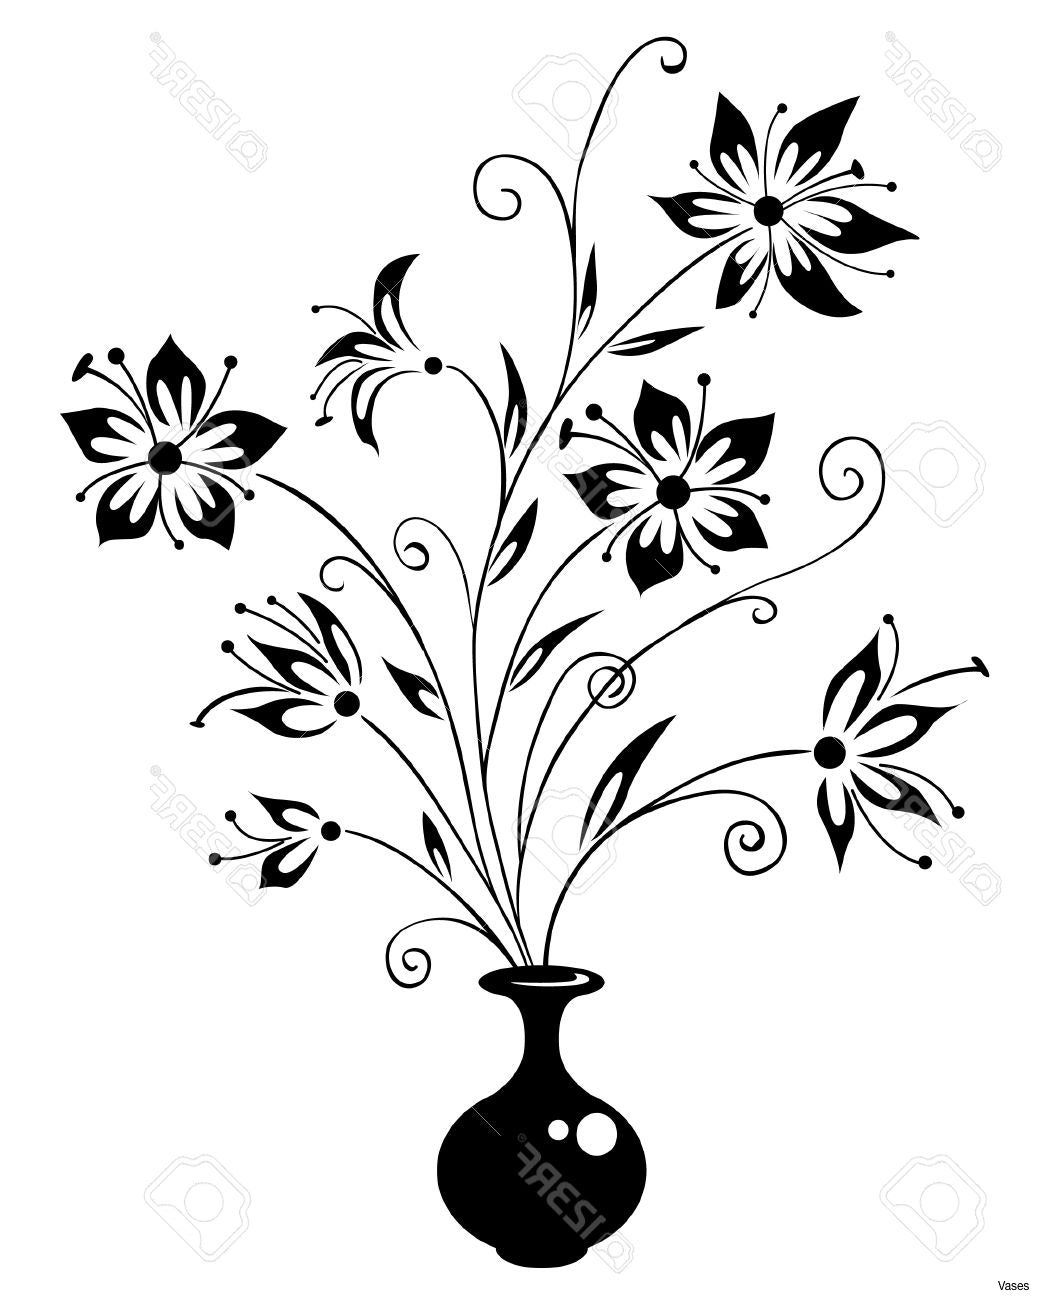 Black and white flower drawing at getdrawings free for 1040x1300 48193350 vase with flowers on white background vector illustration mightylinksfo